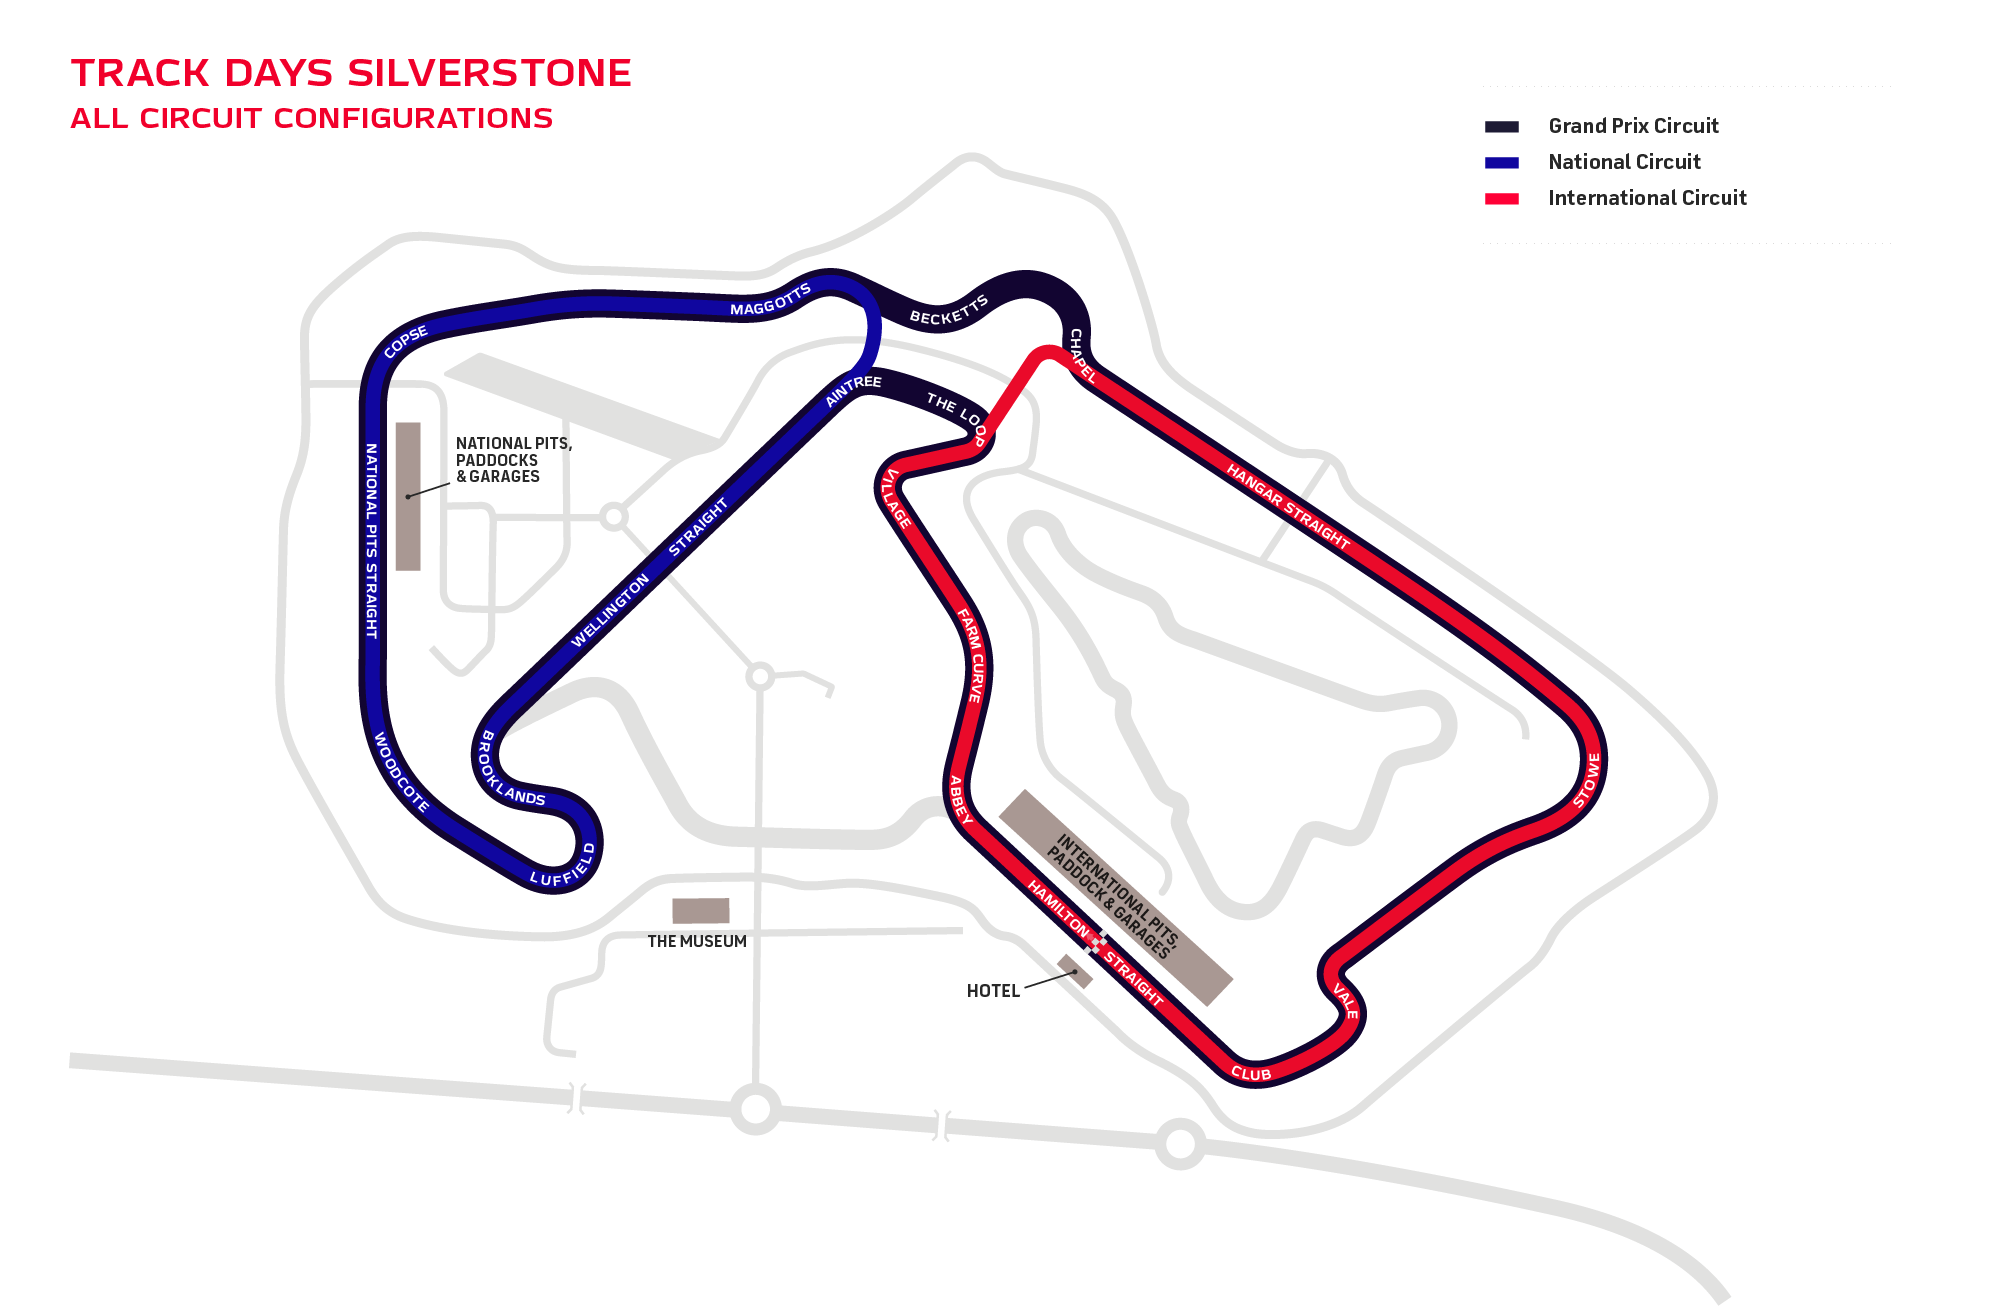 Track Days circuits at Silverstone